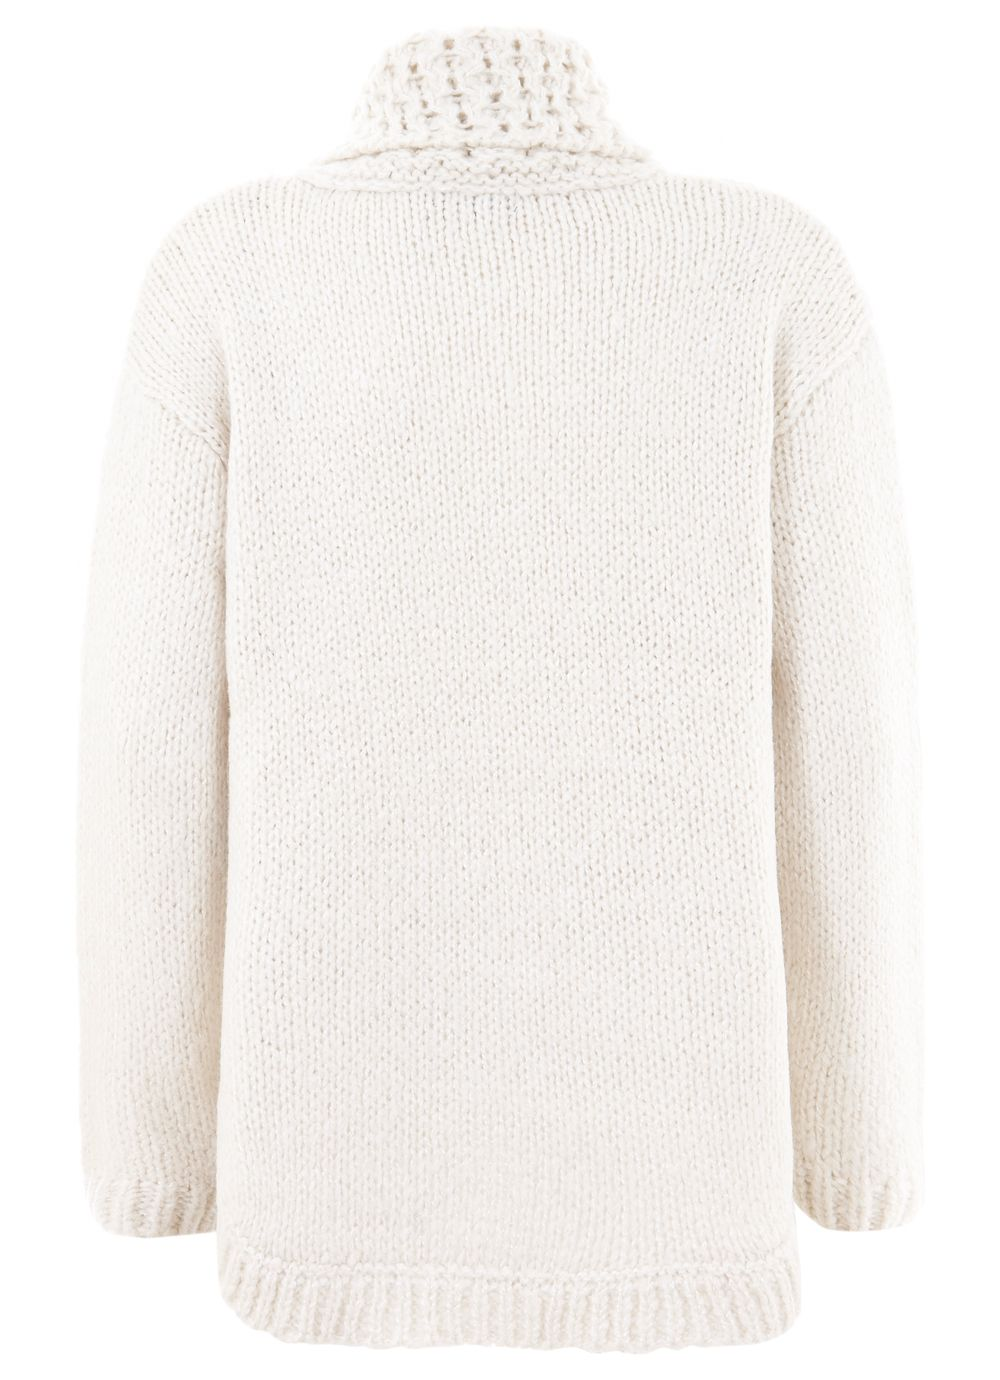 Cream wavy stitch ovoid knit